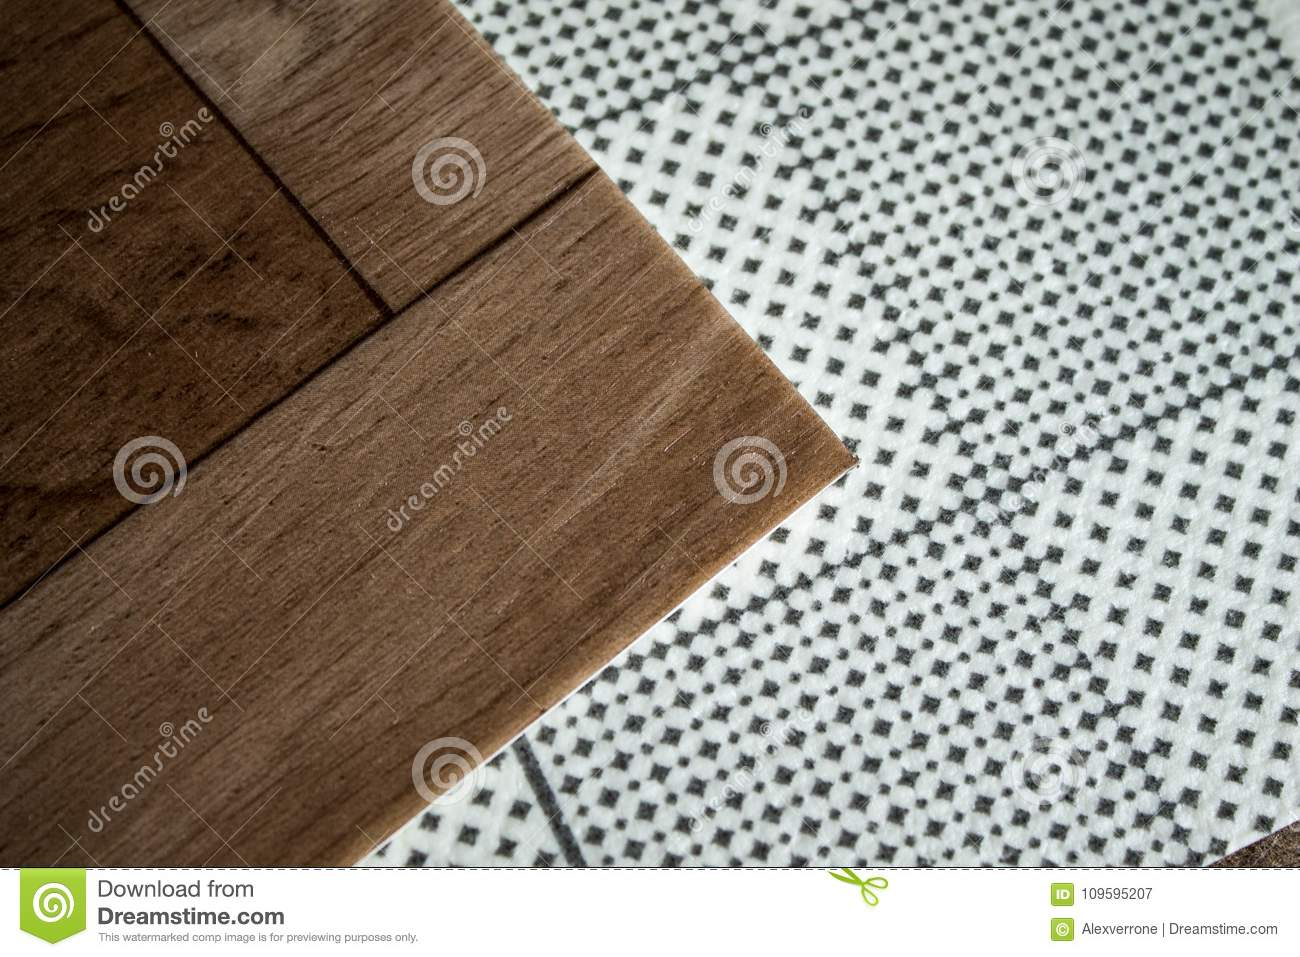 Samples Of Linoleum Cutting And Laying Of Floor Coverings Stock